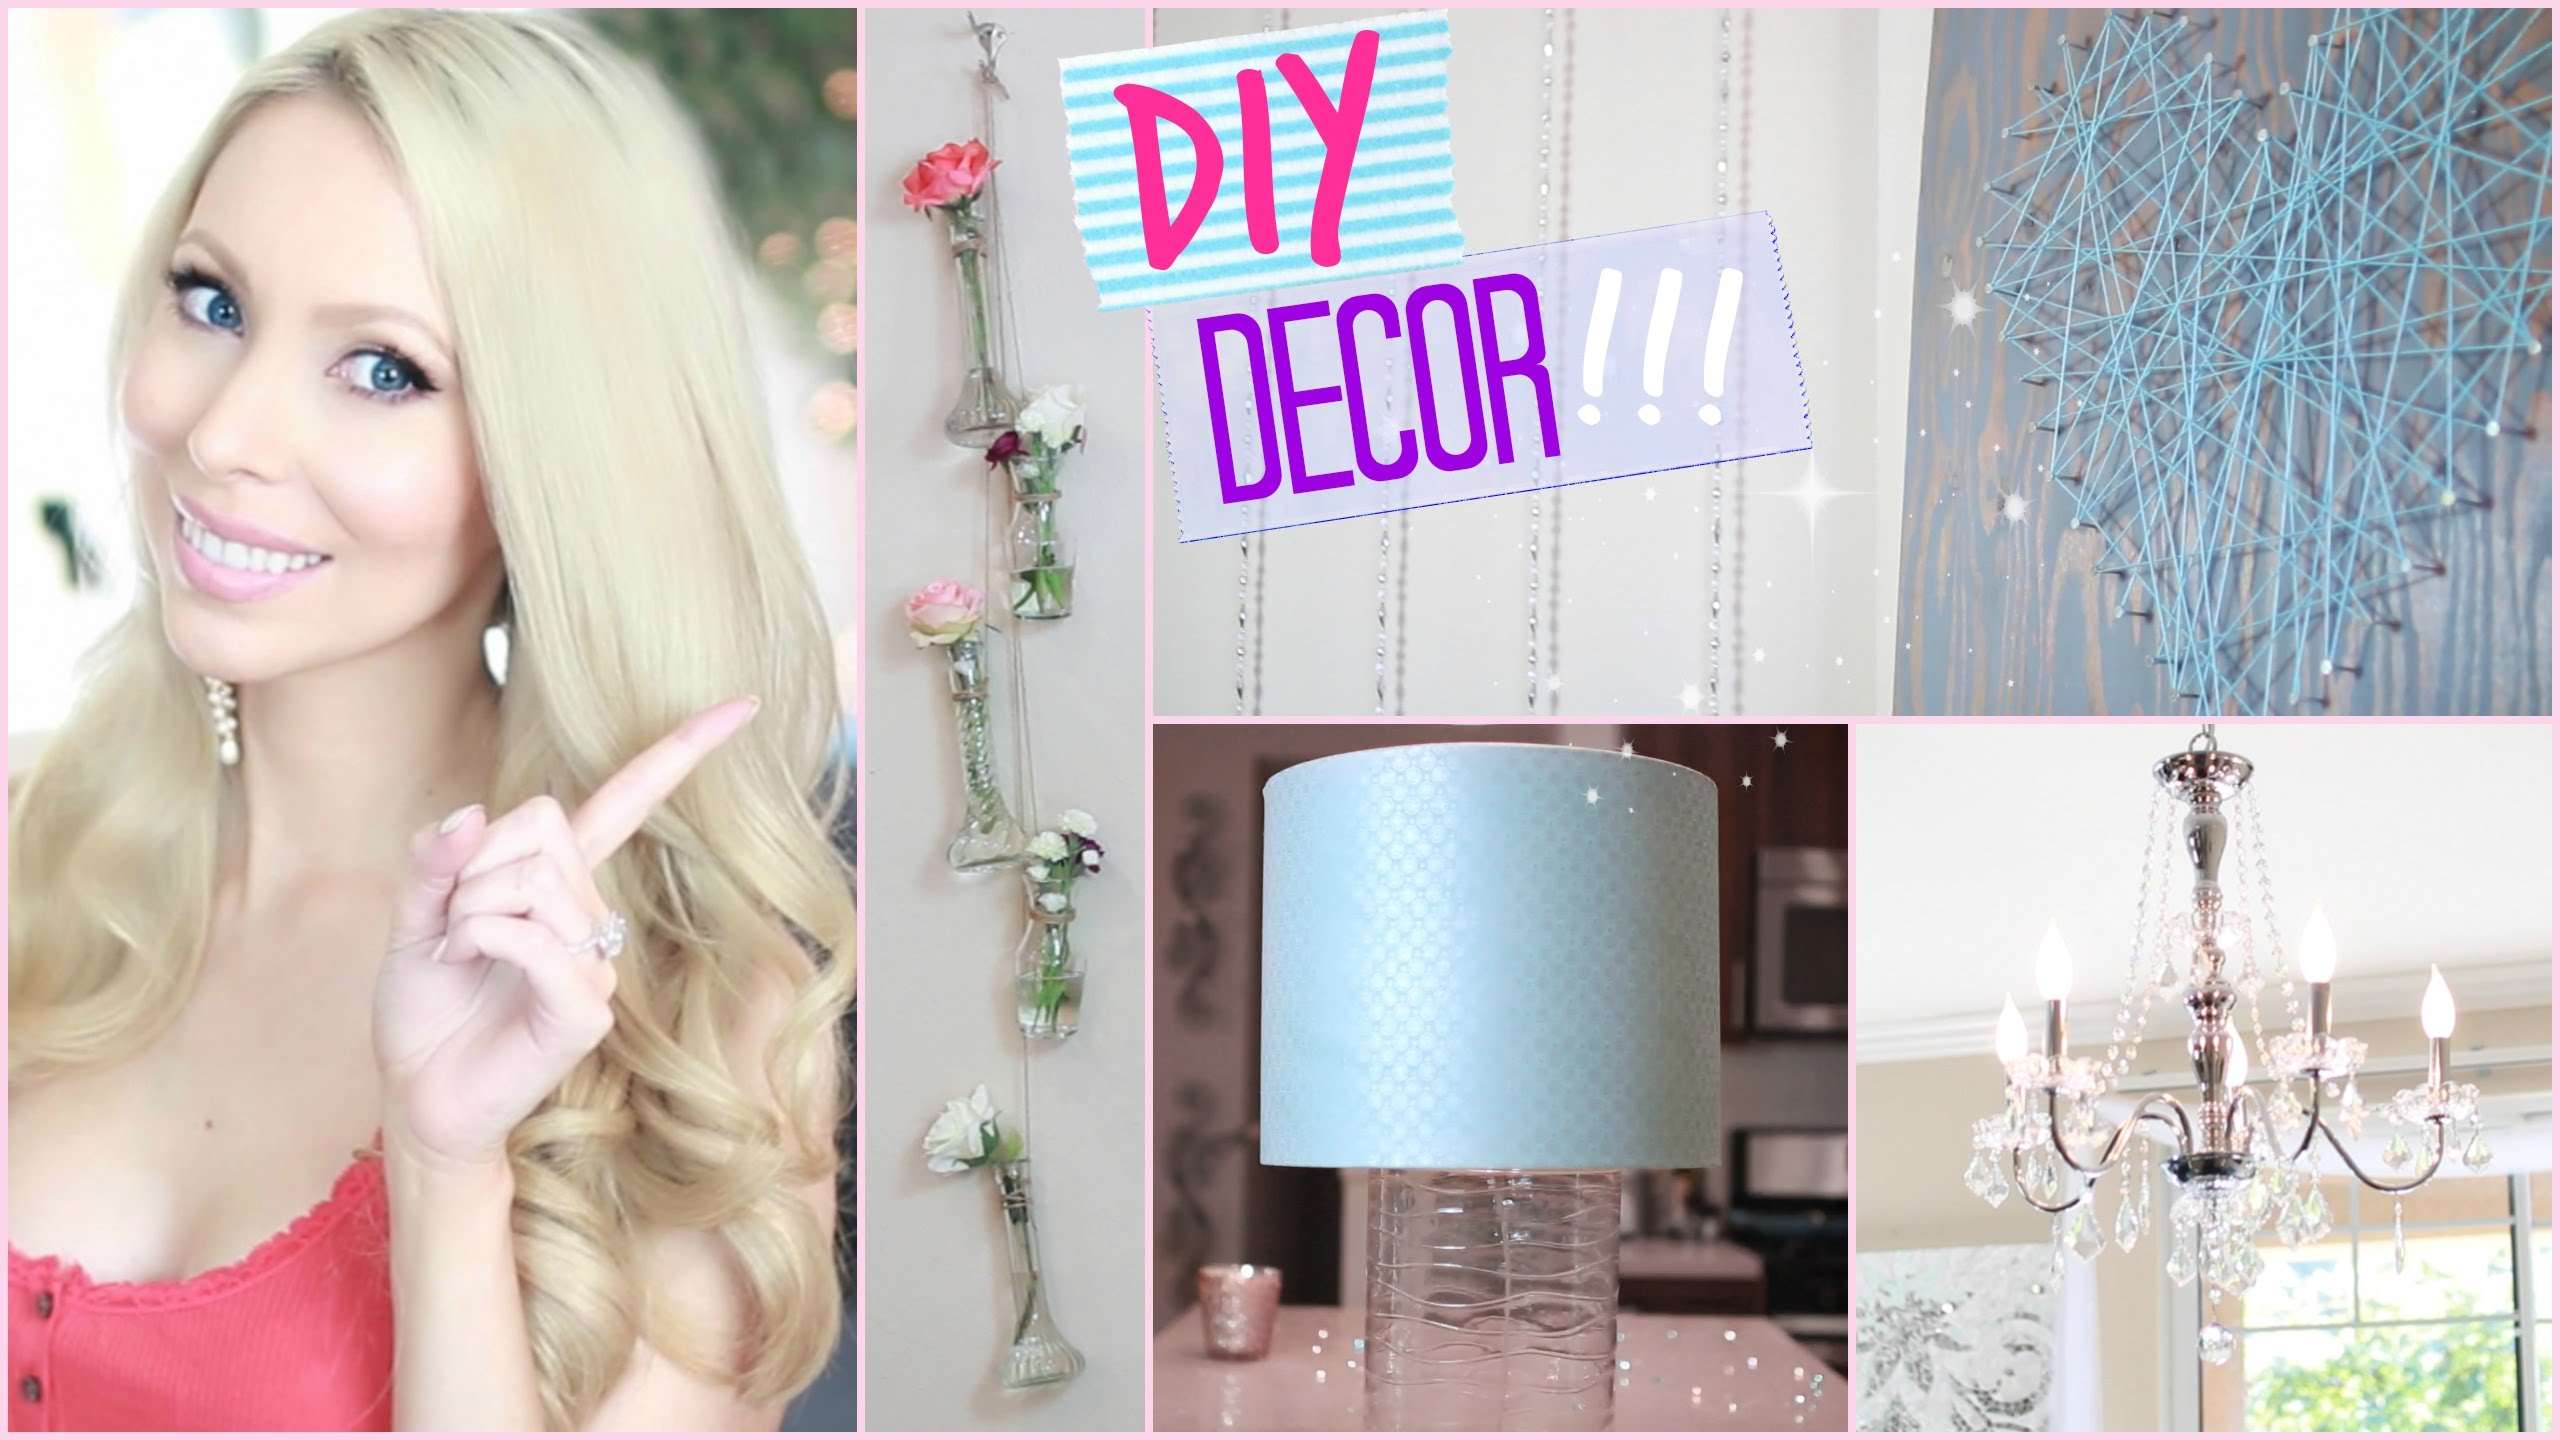 Do it yourself Area Decor + Decorating Tips! ♡ Collab with MissLizHeart